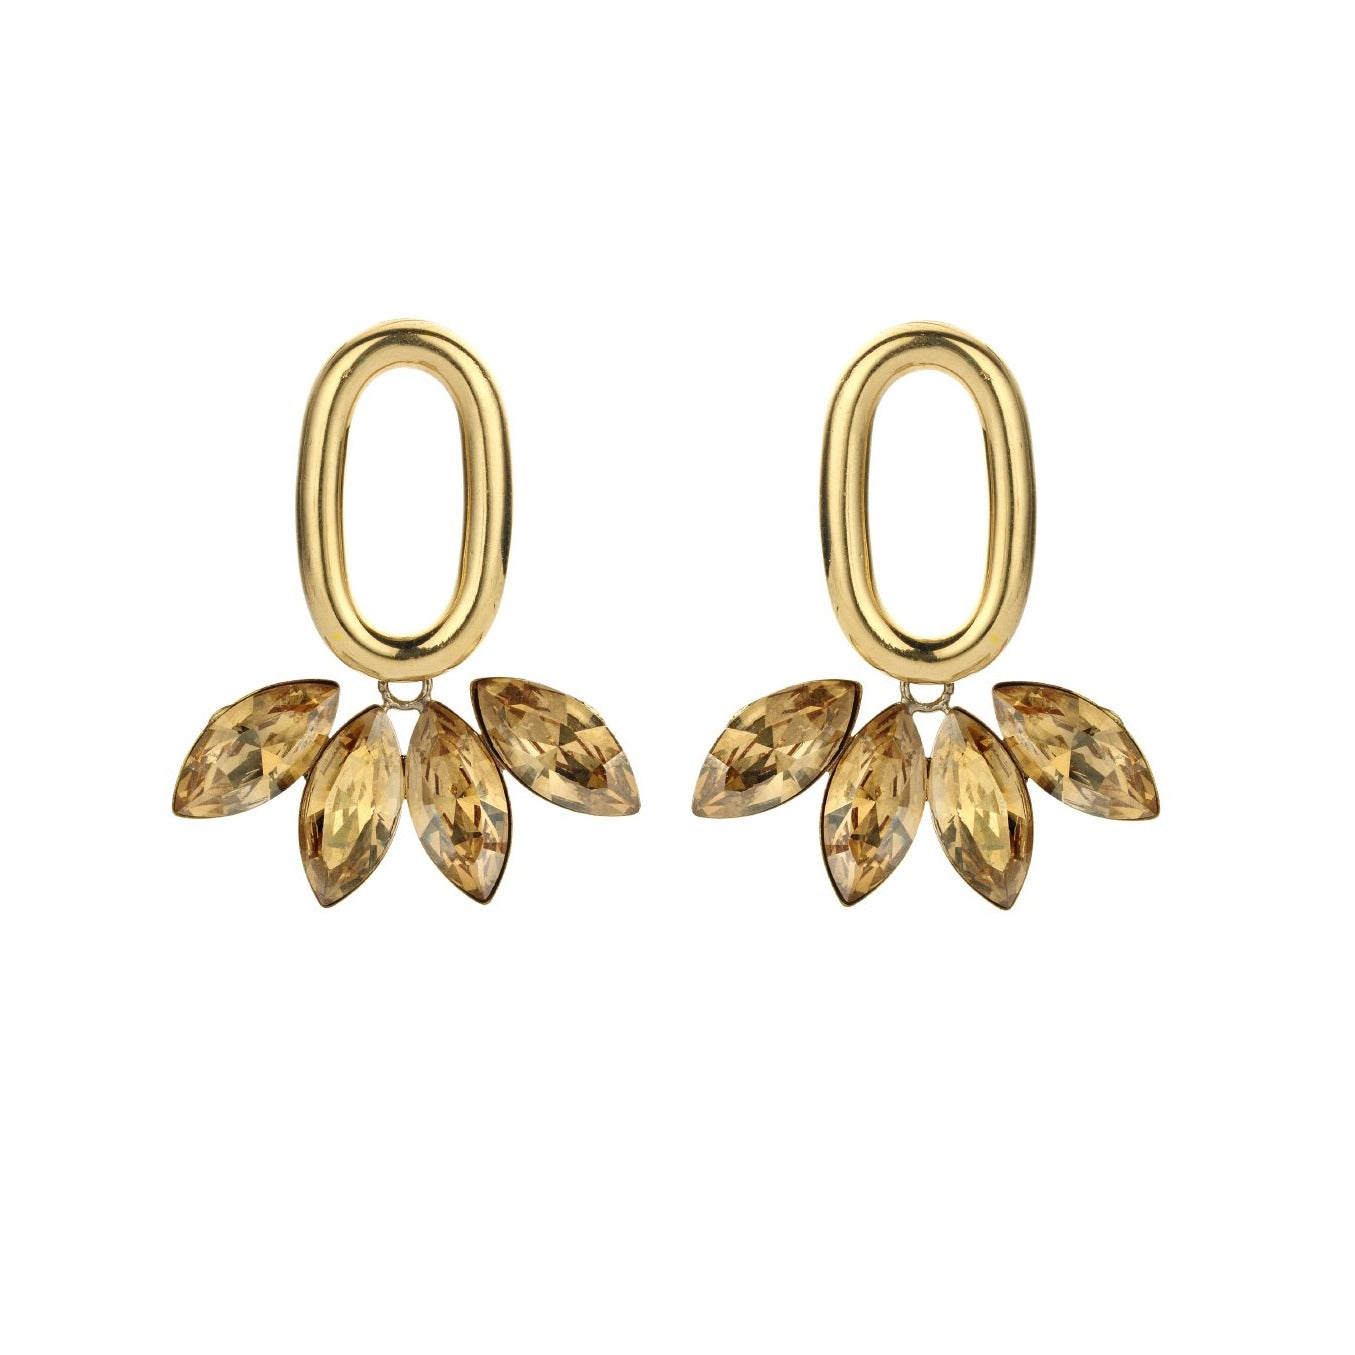 PRE-ORDER Pippa gold earrings - Souvenirs de Pomme